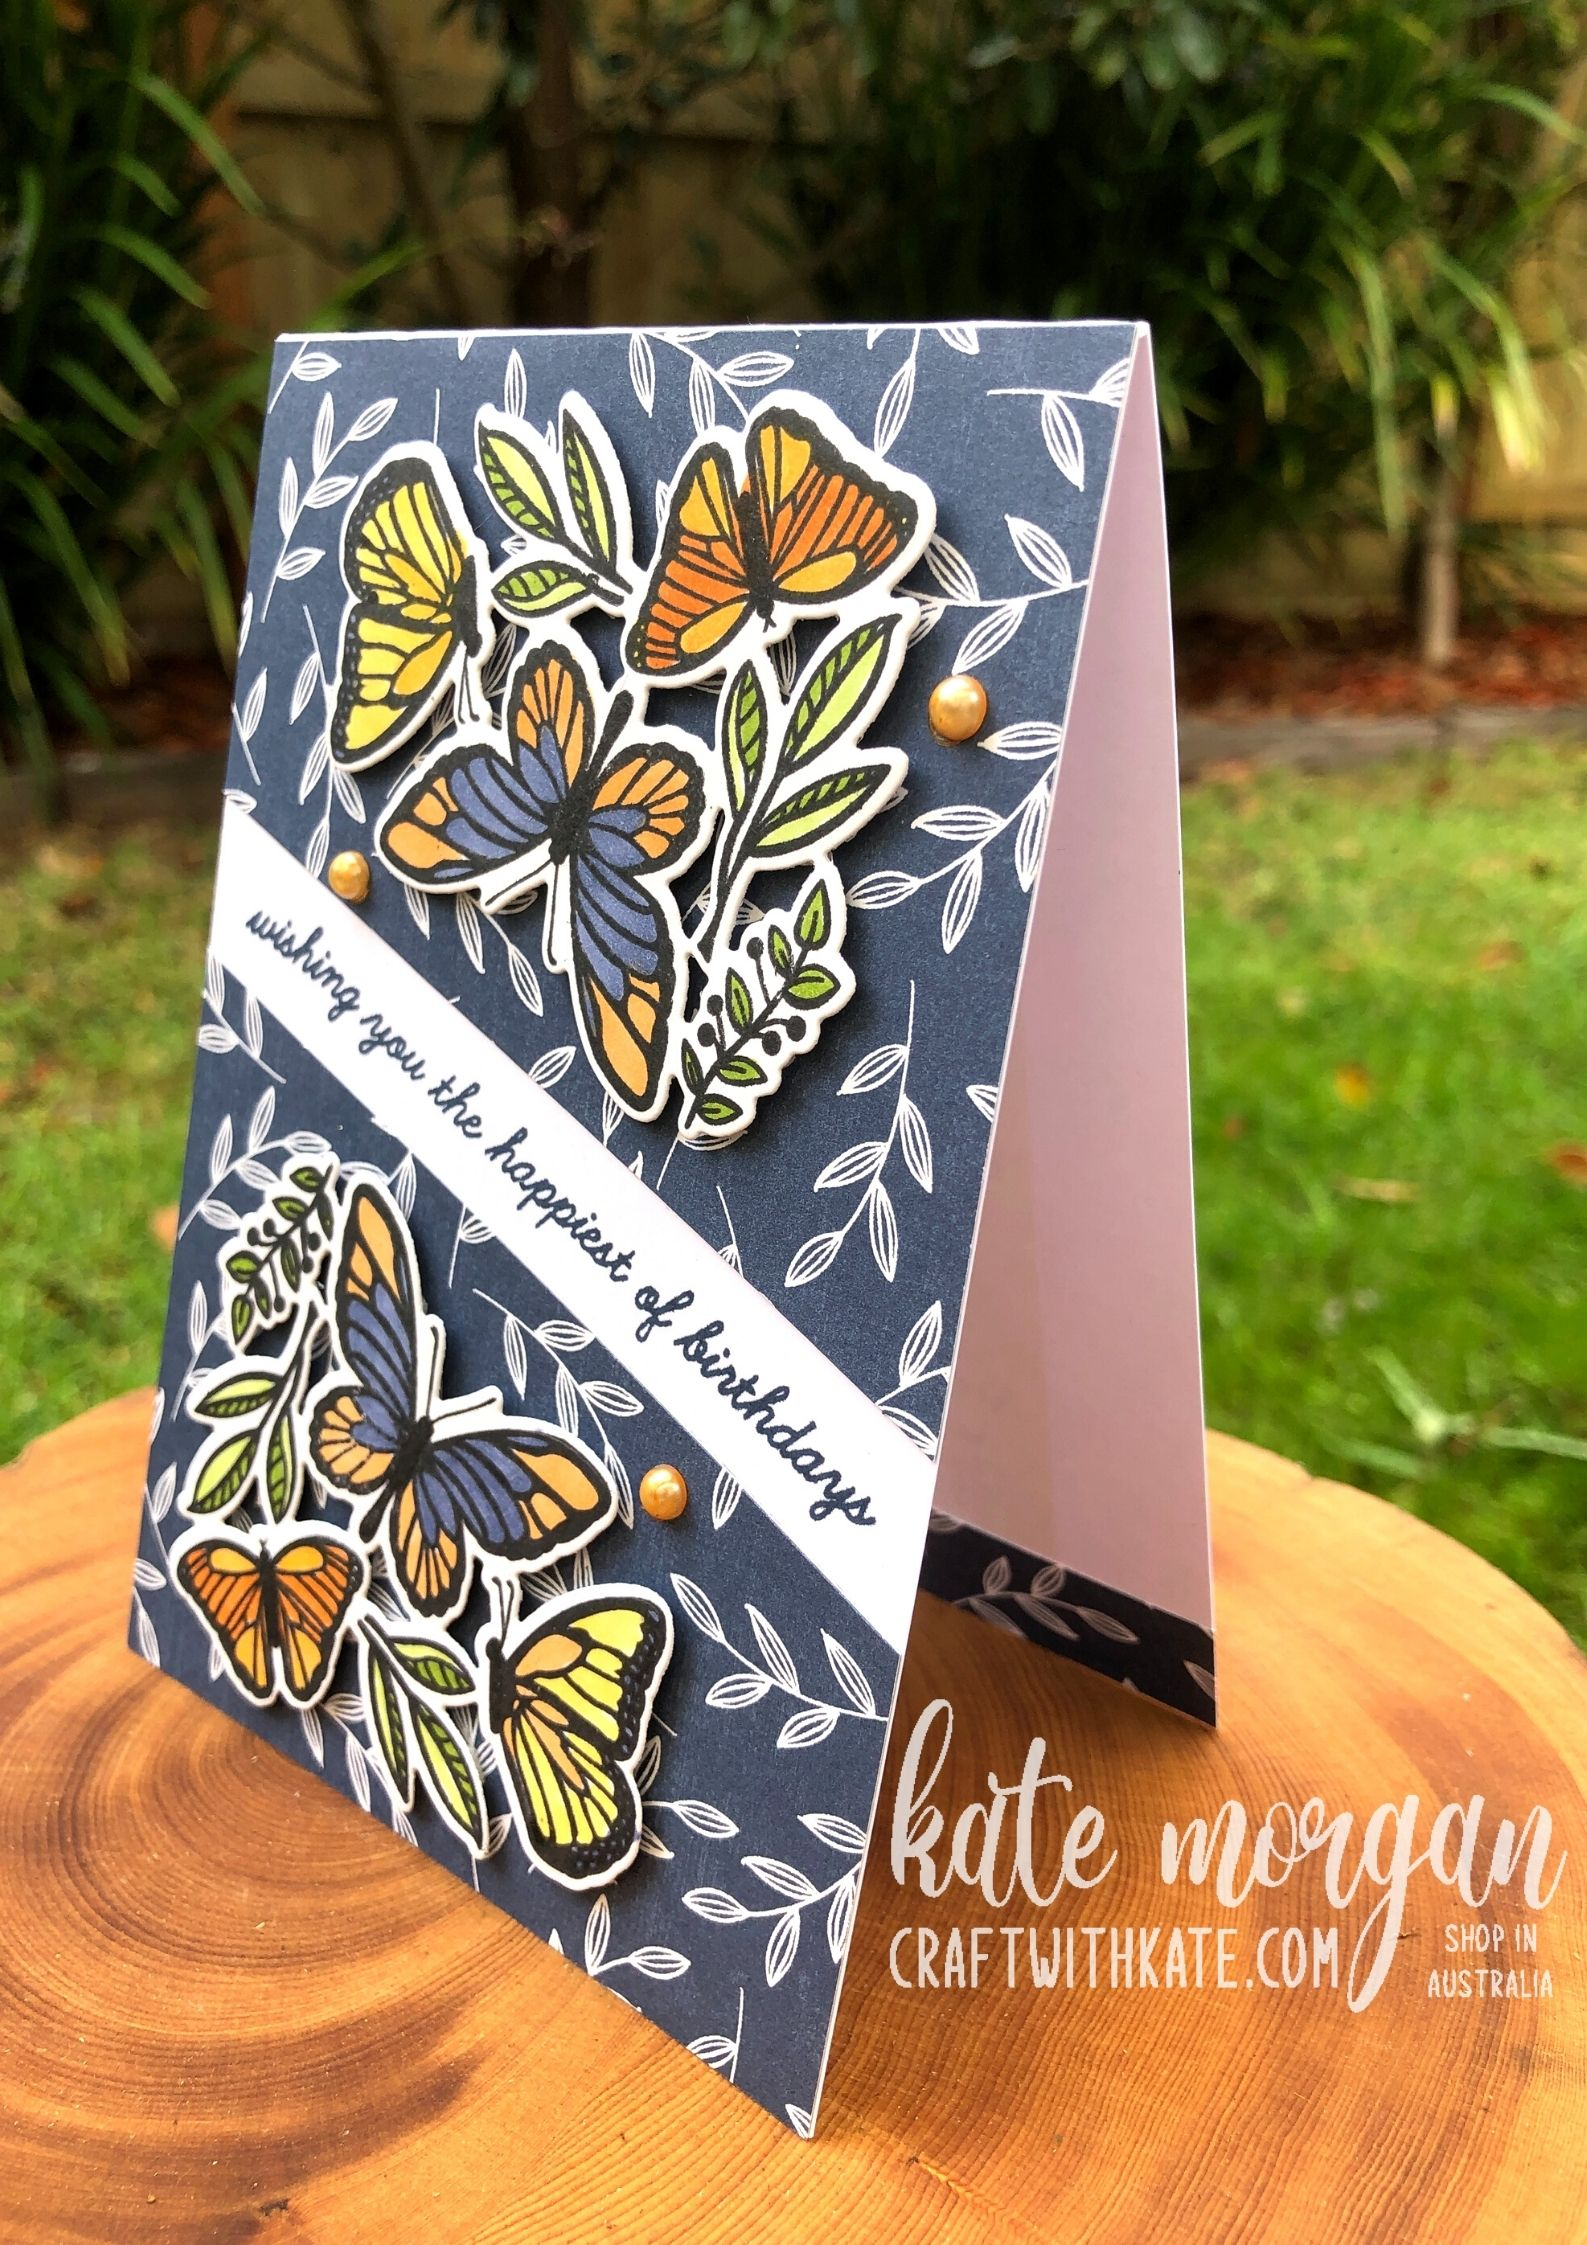 Floating & Fluttering Bundle by Kate Morgan Stampin Up Australia 2021